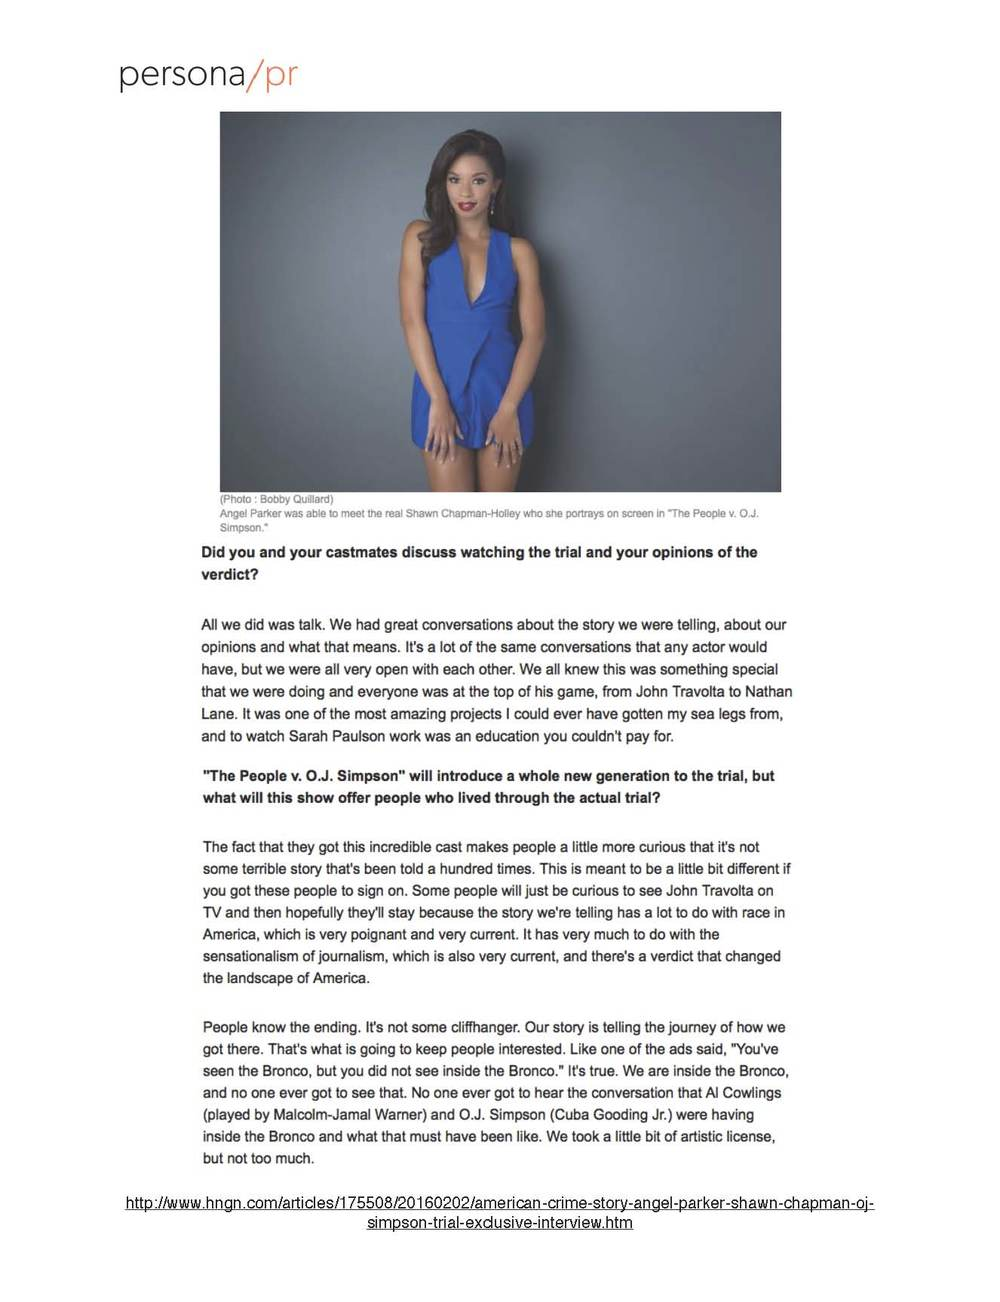 AngelParker-HNGN-02.02.16_Page_5.jpg